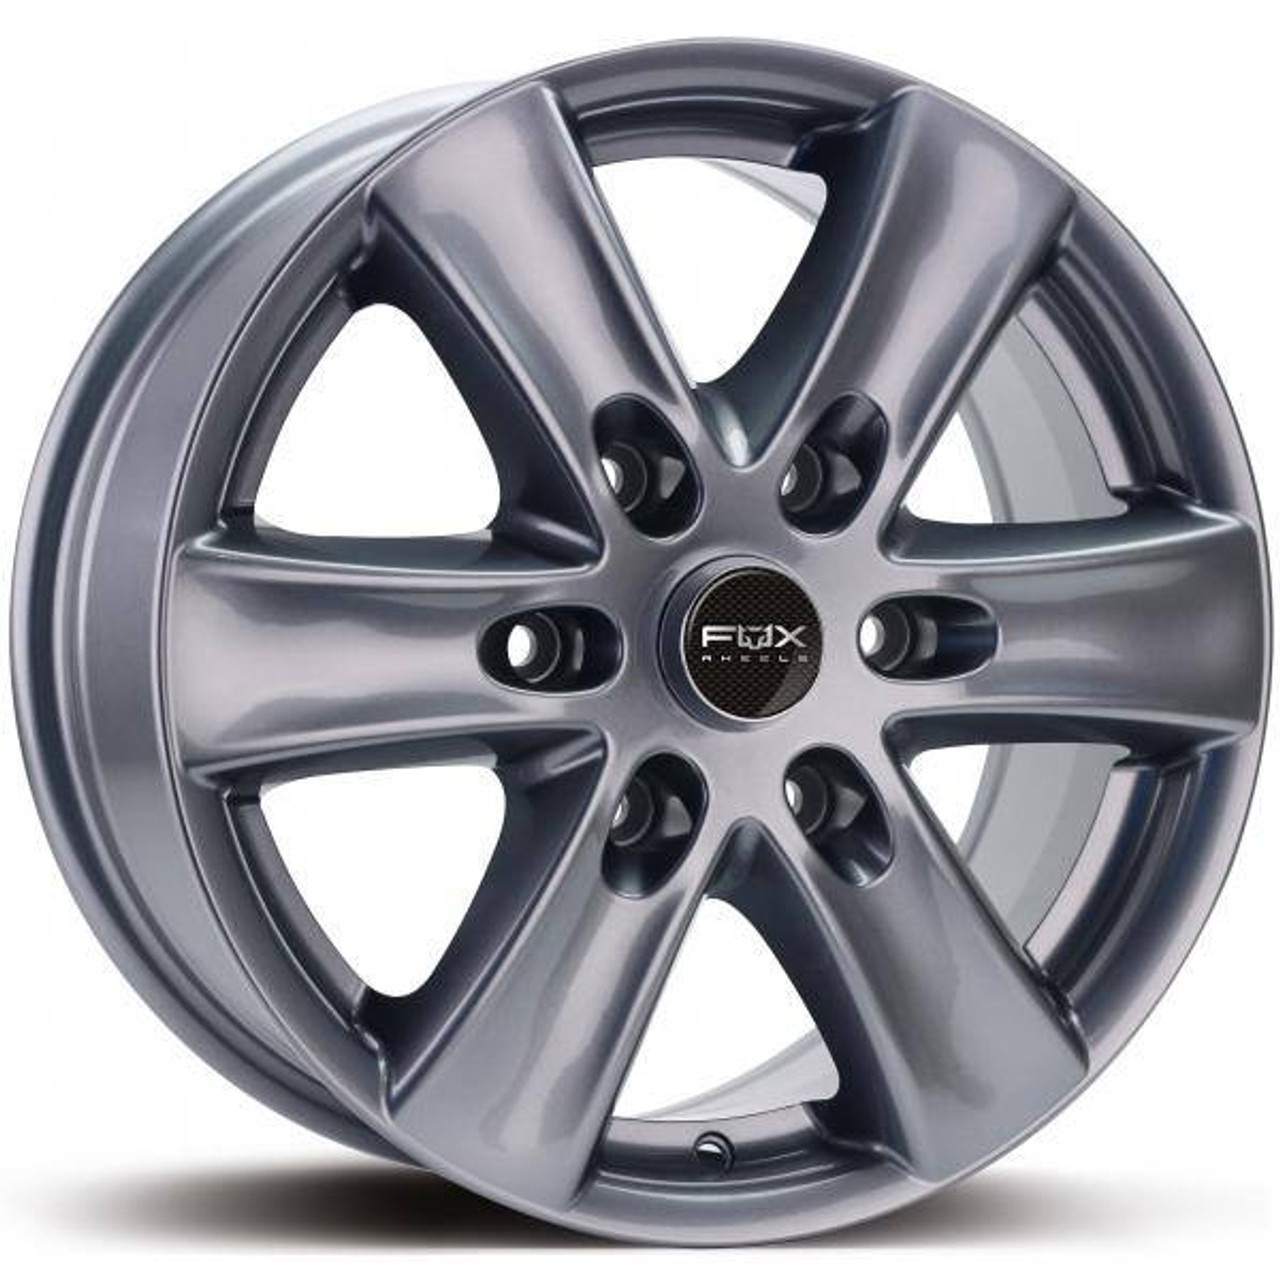 FOX Viper 2 Alloy Wheels Gloss Grey